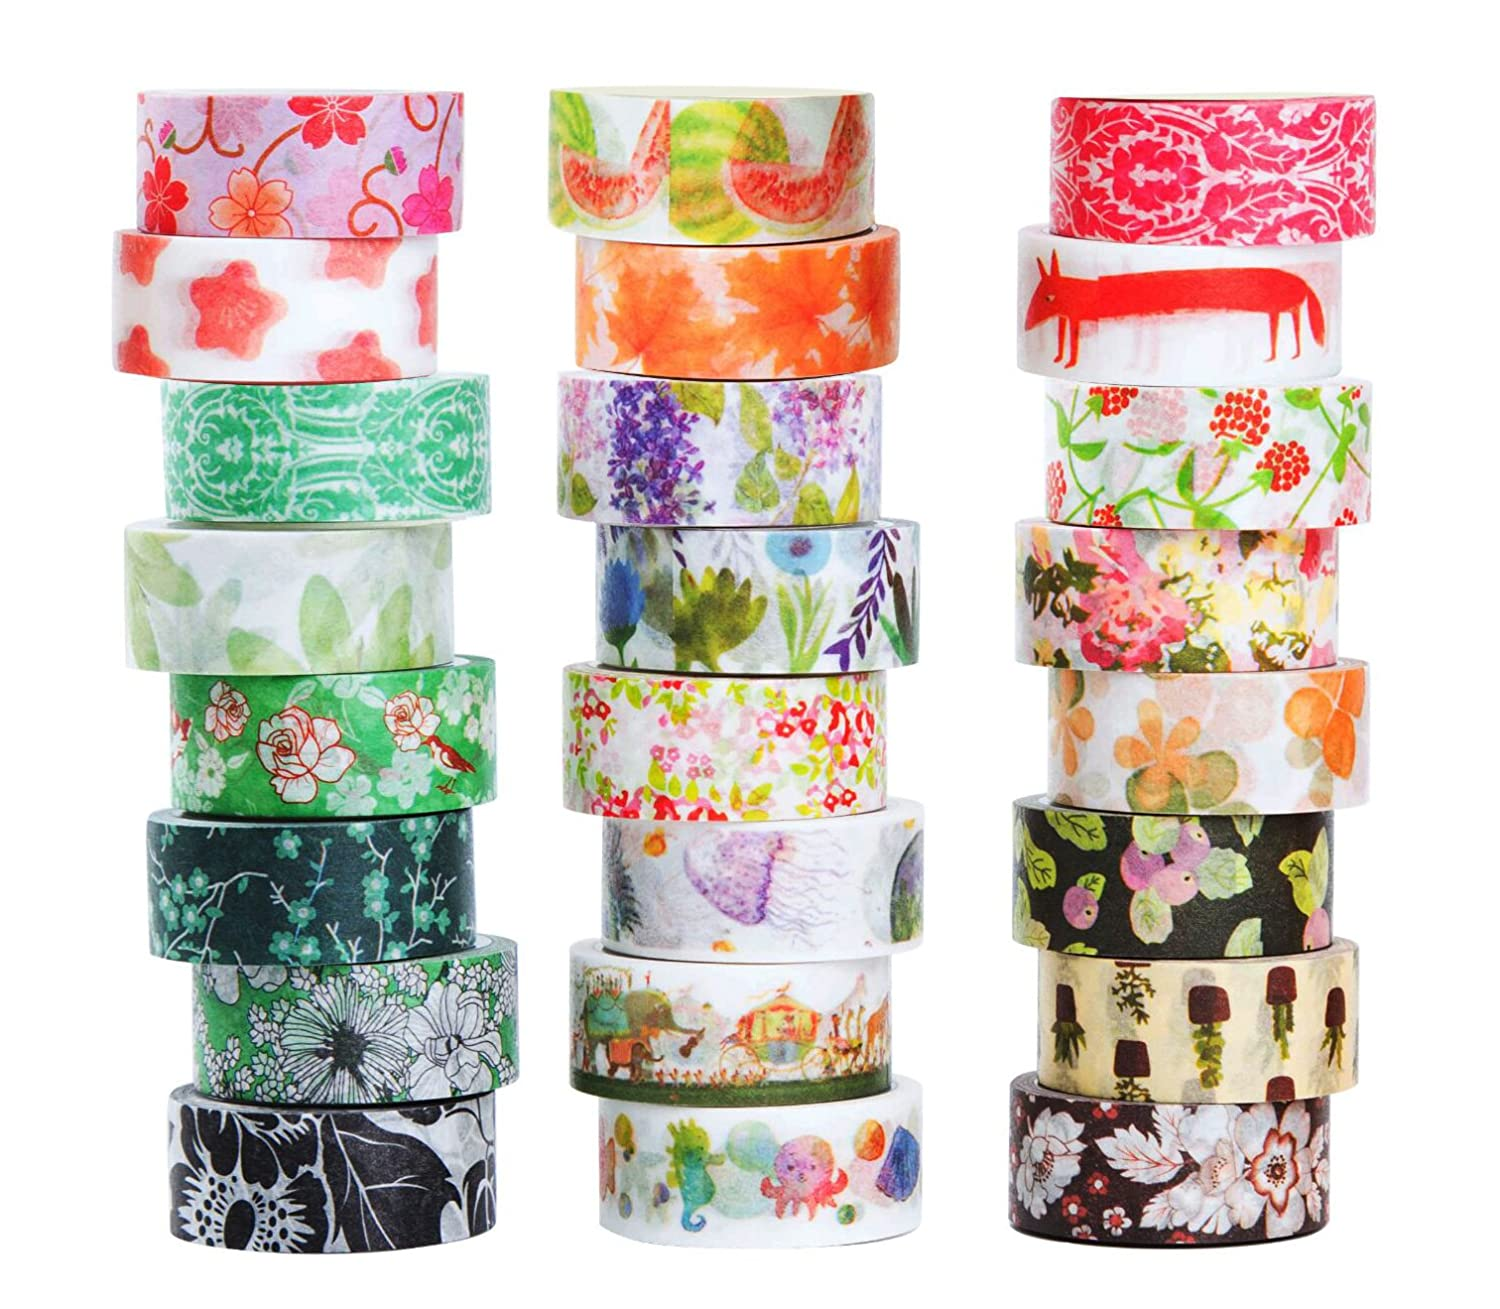 Washi Masking Tape Set of 24, Decorative Masking Tape Collection,Tape for DIY Crafts and Gift Wrapping Office Party Supplies Youngmer 4336847207